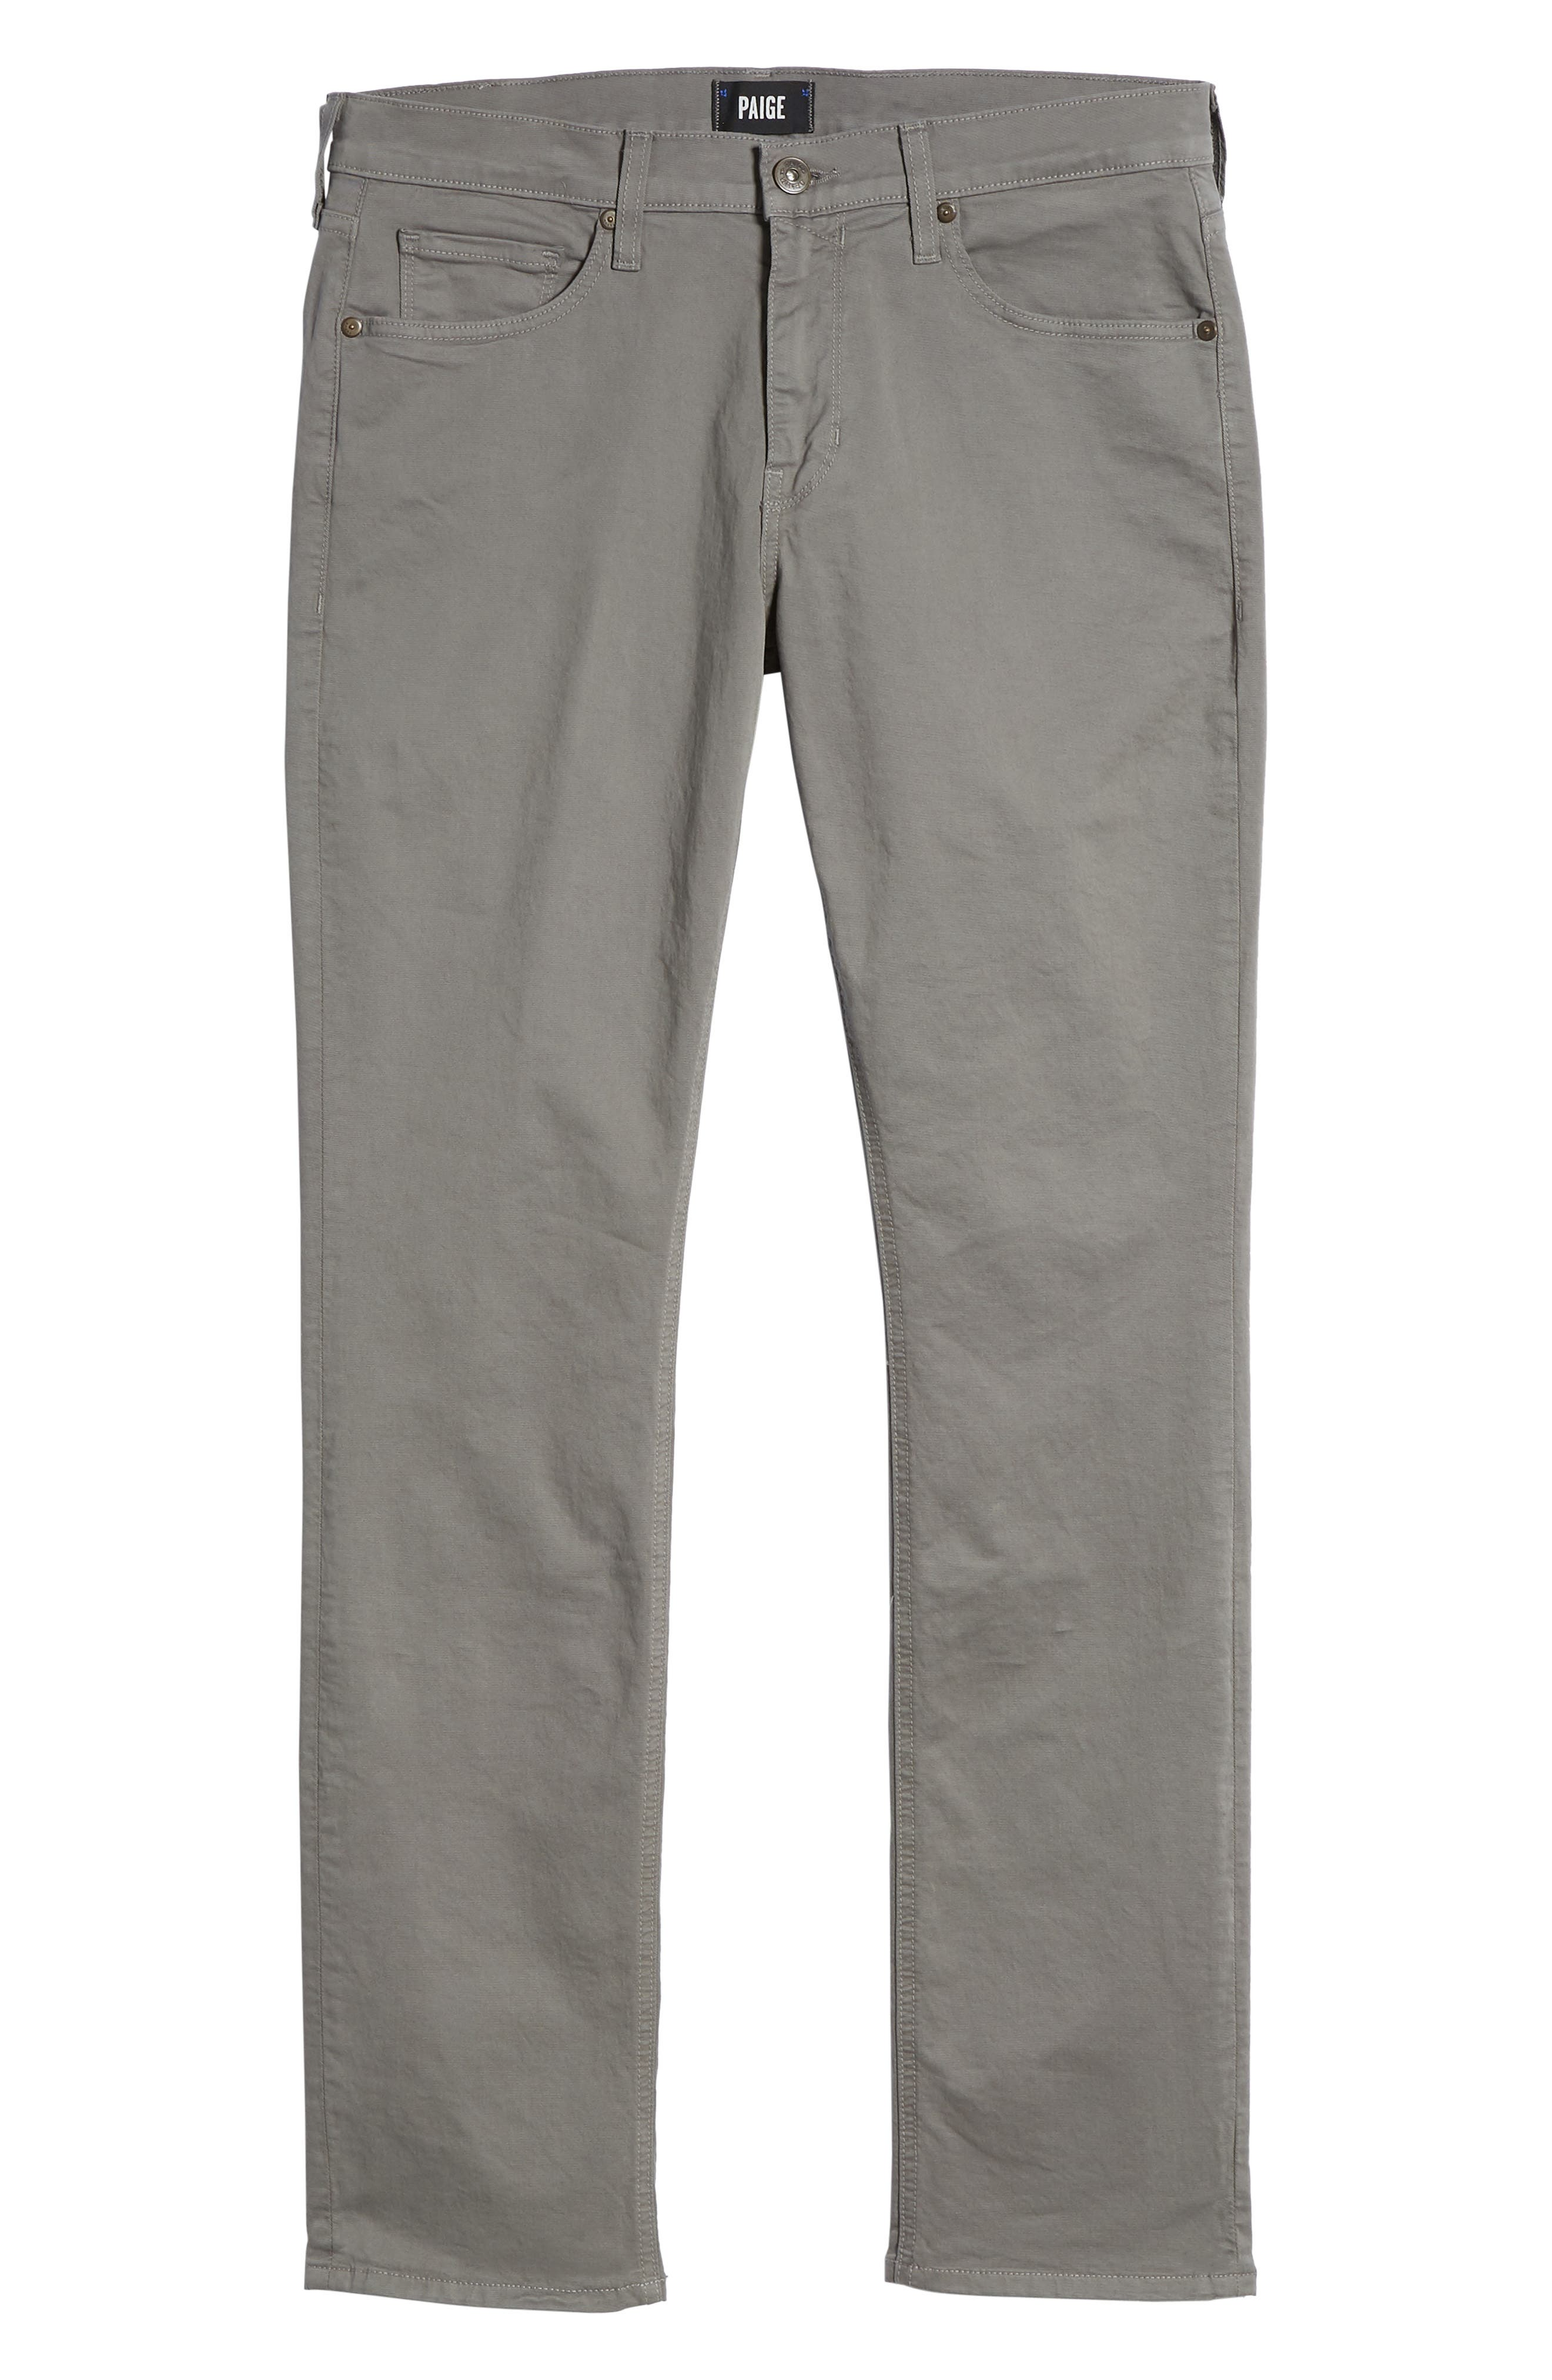 'Federal' Slim Straight Leg Twill Pants,                             Alternate thumbnail 6, color,                             022